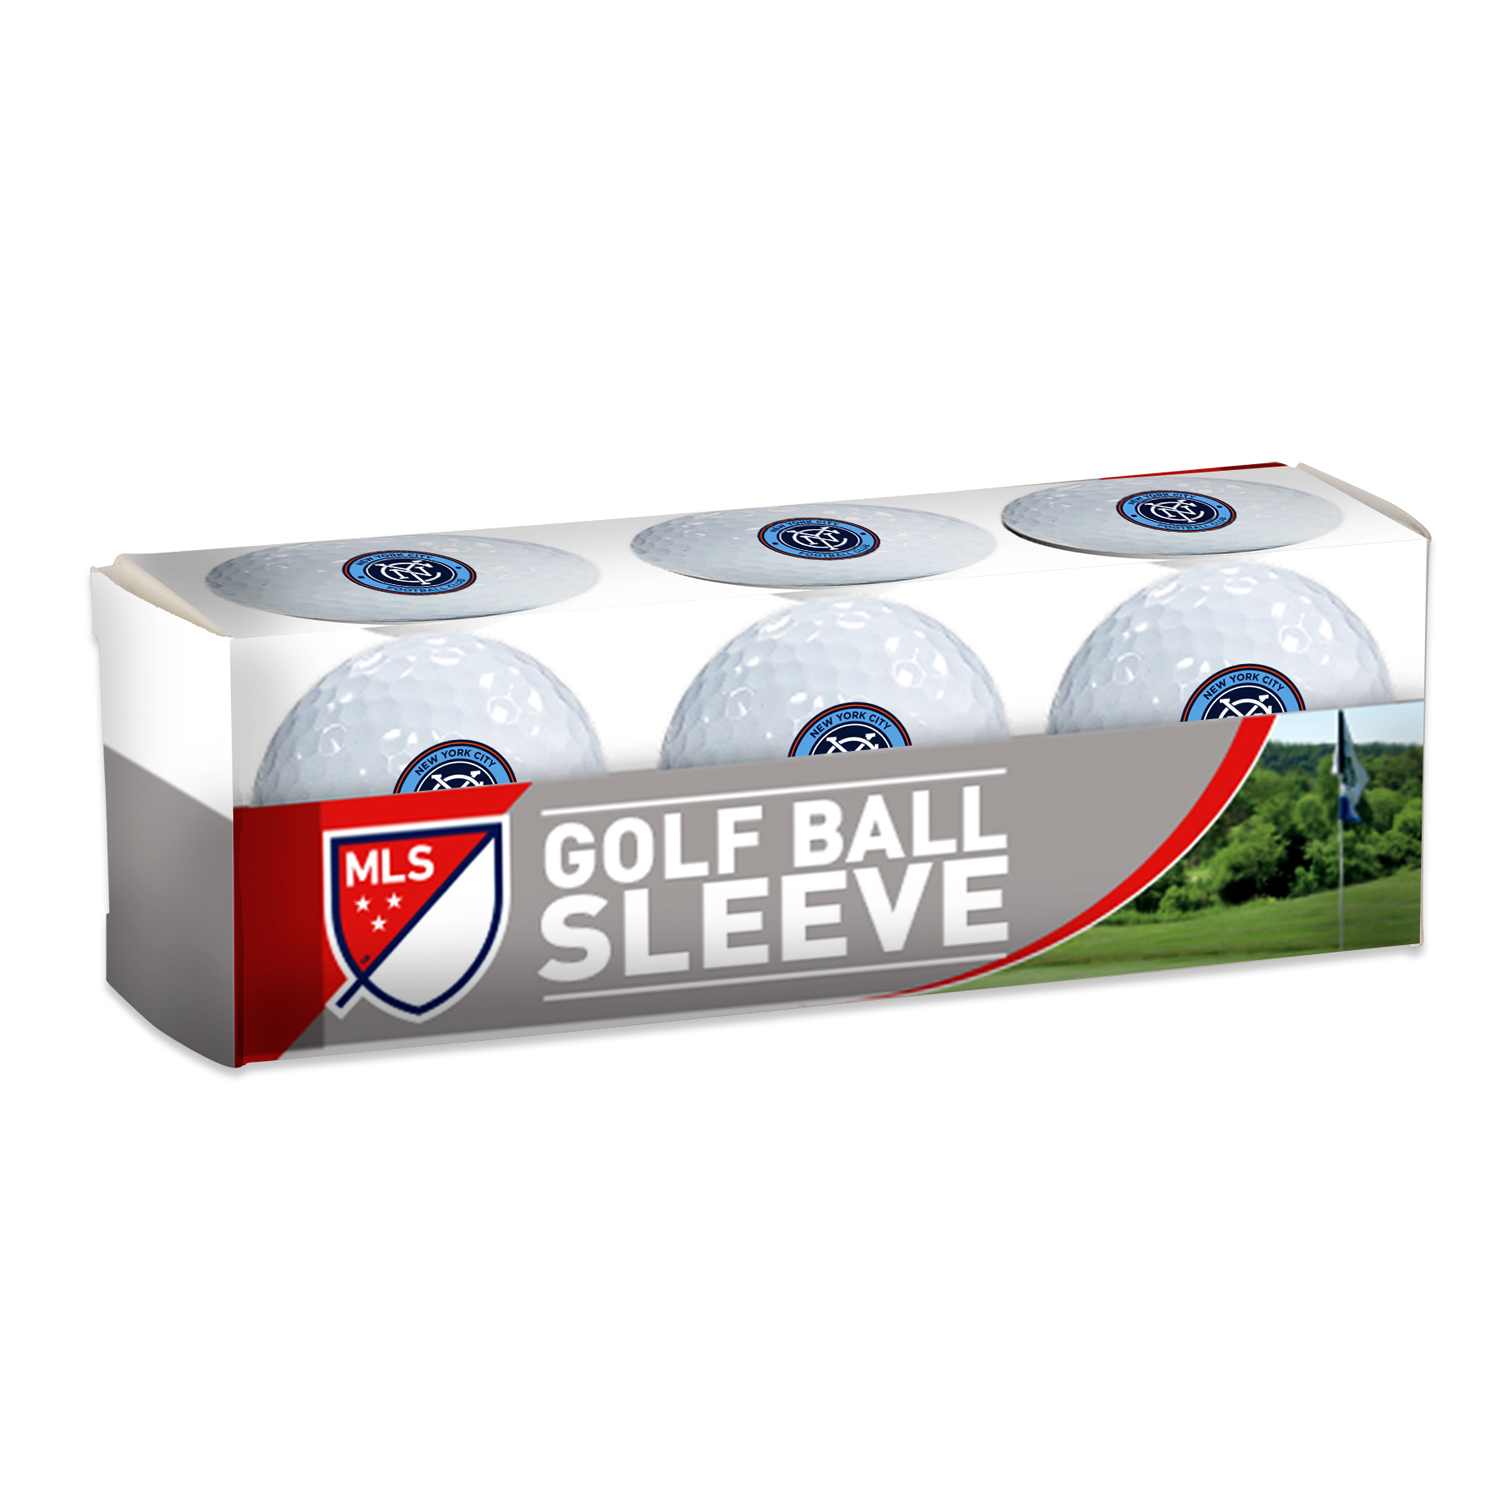 New York City FC WinCraft 3-Pack Golf Ball Sleeve - No Size